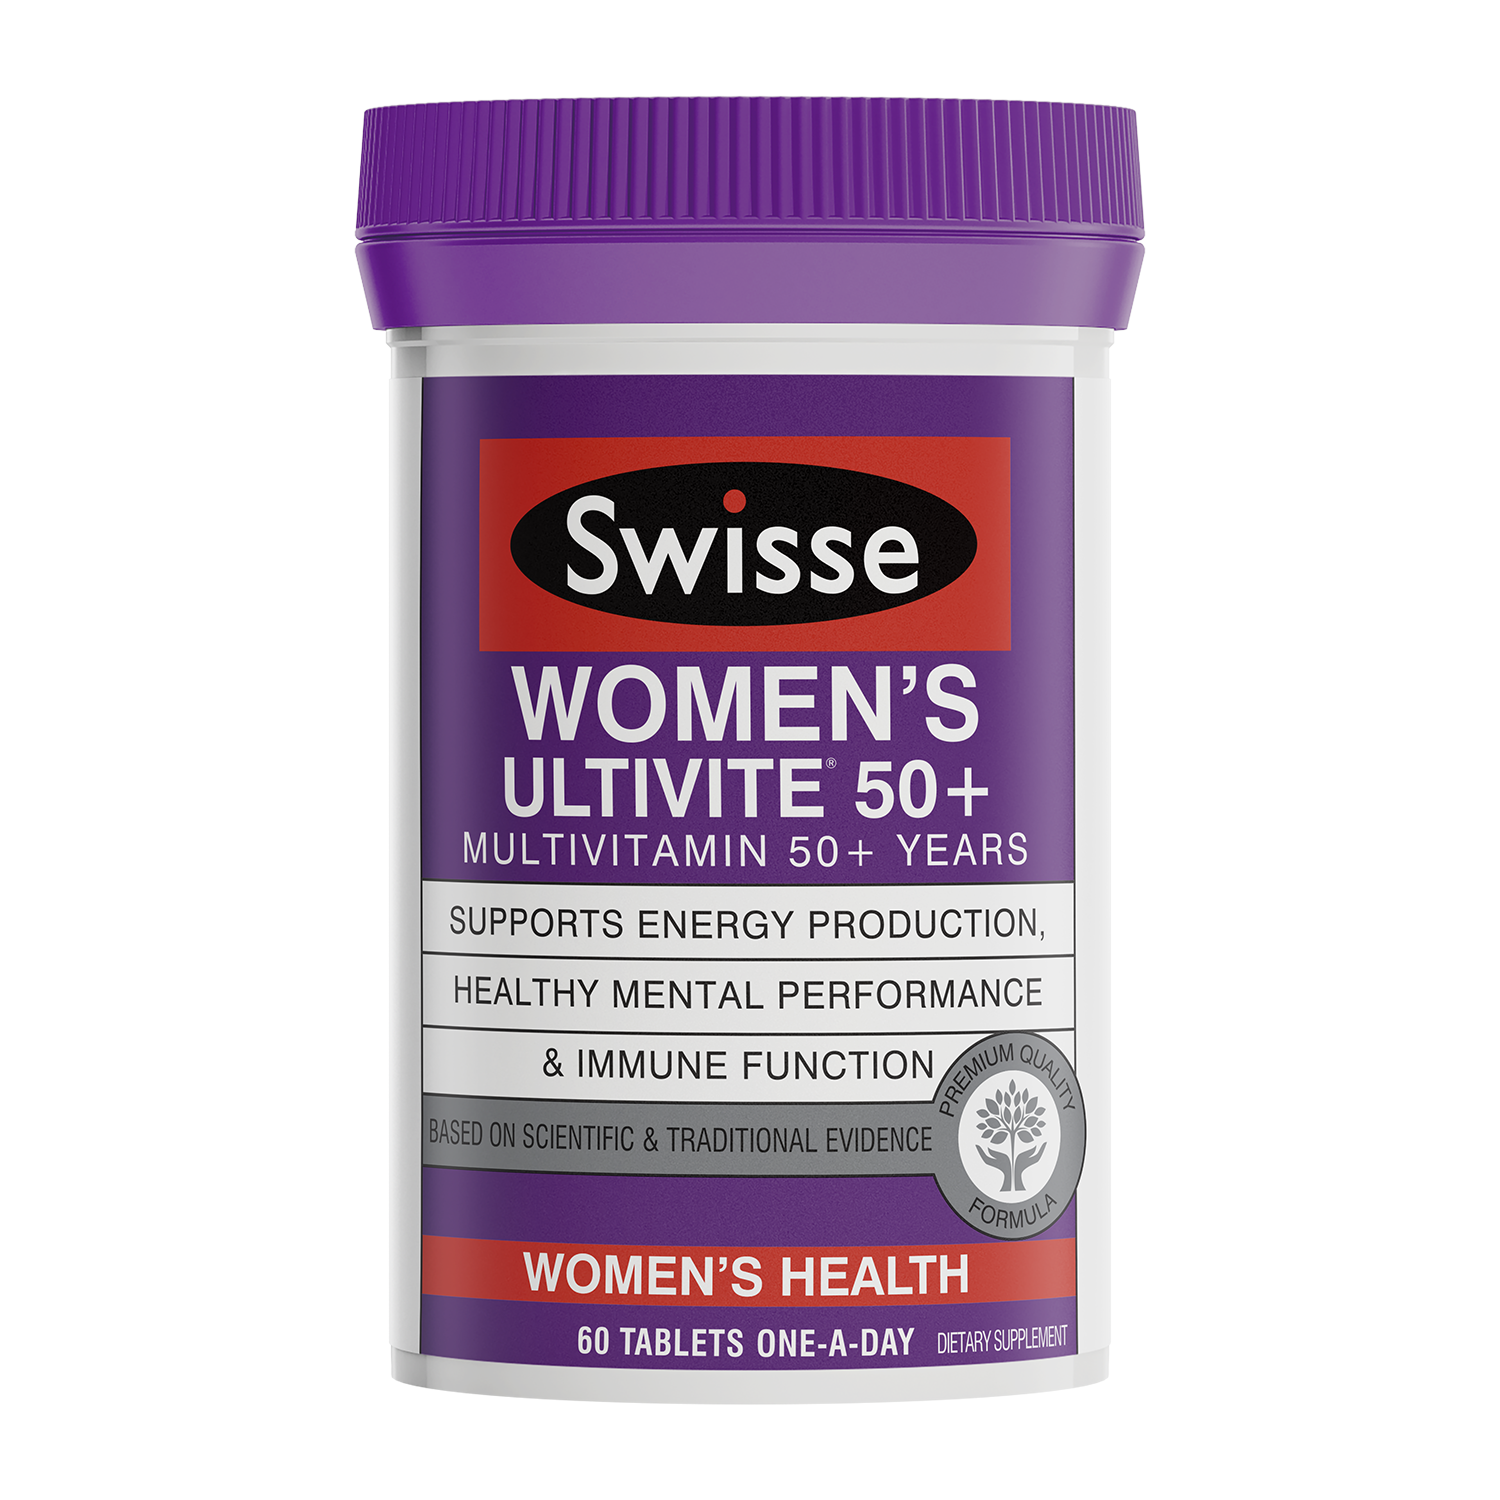 Swisse Womens Ultivite 50 product 60 tabs